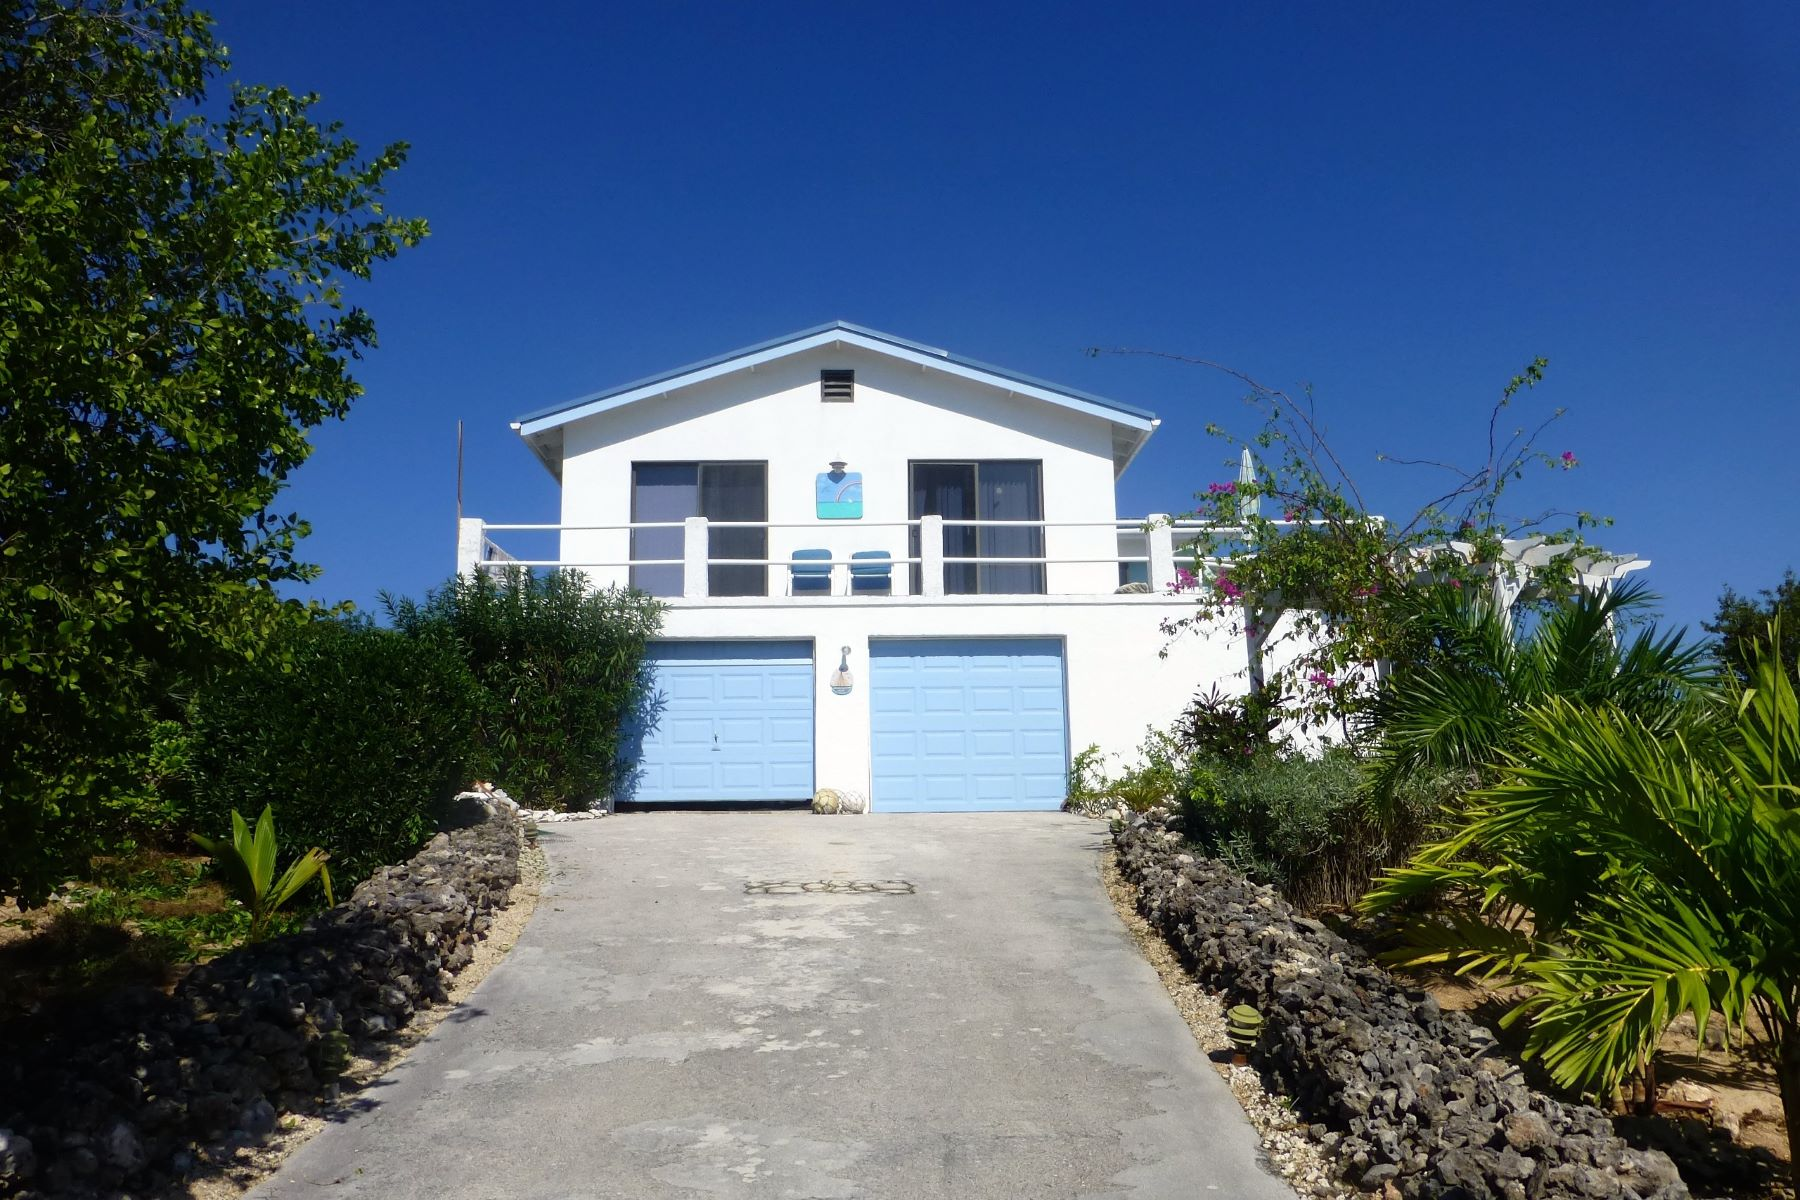 Single Family Home for Sale at Rainbows End Rainbow Bay, Eleuthera Bahamas